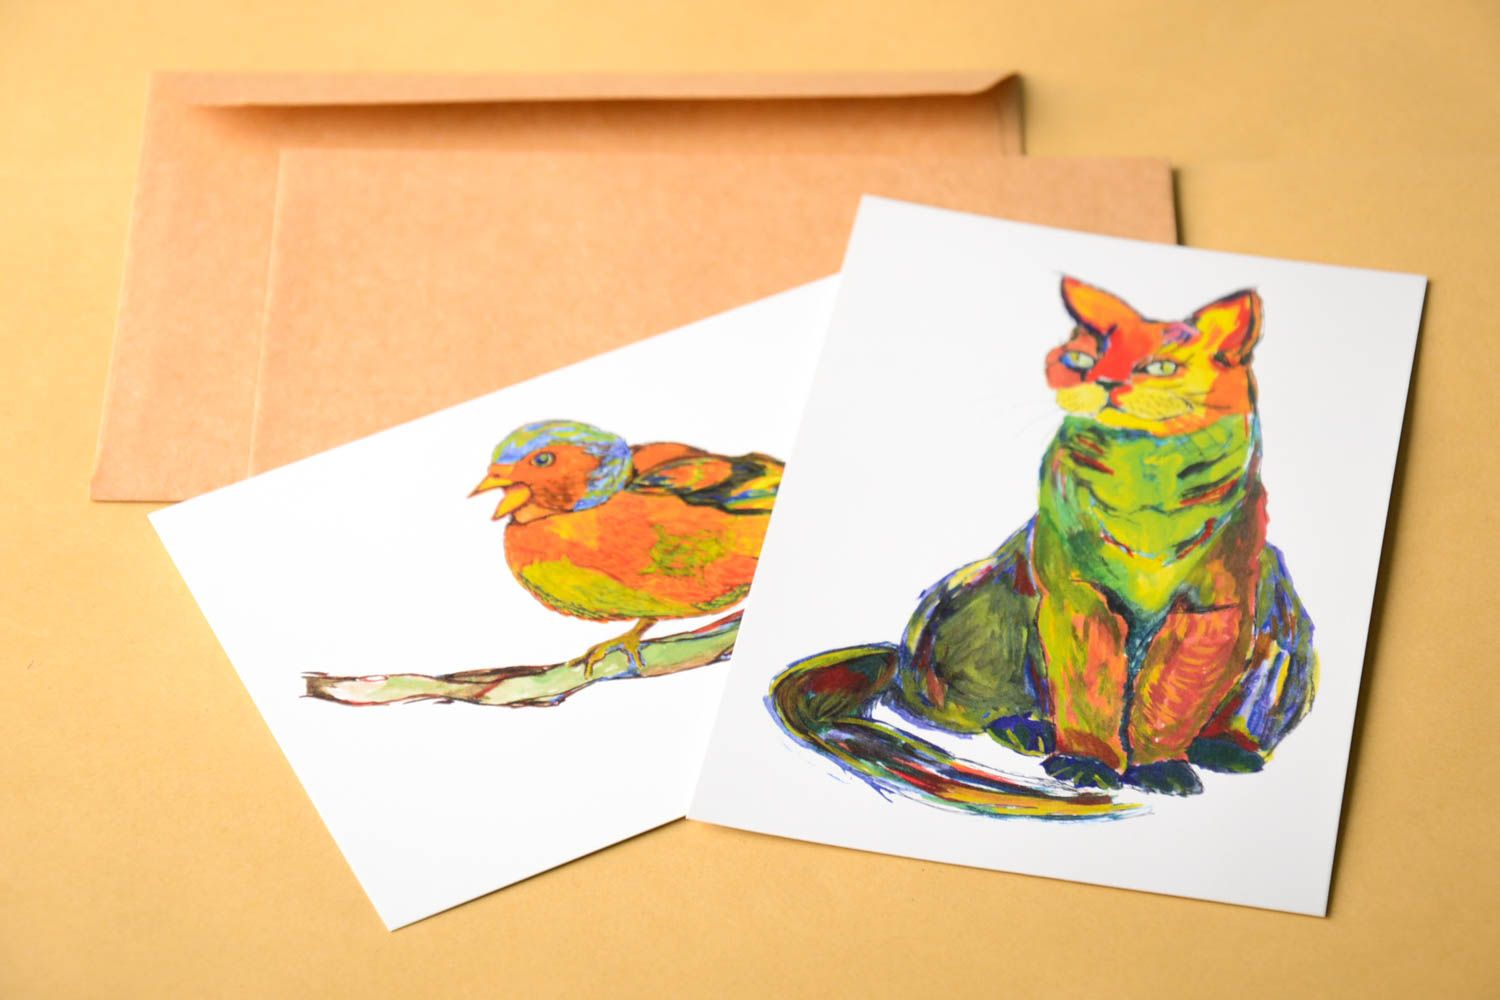 Exclusive greeting card for handmade gift ideas designer cards for signature photo 1